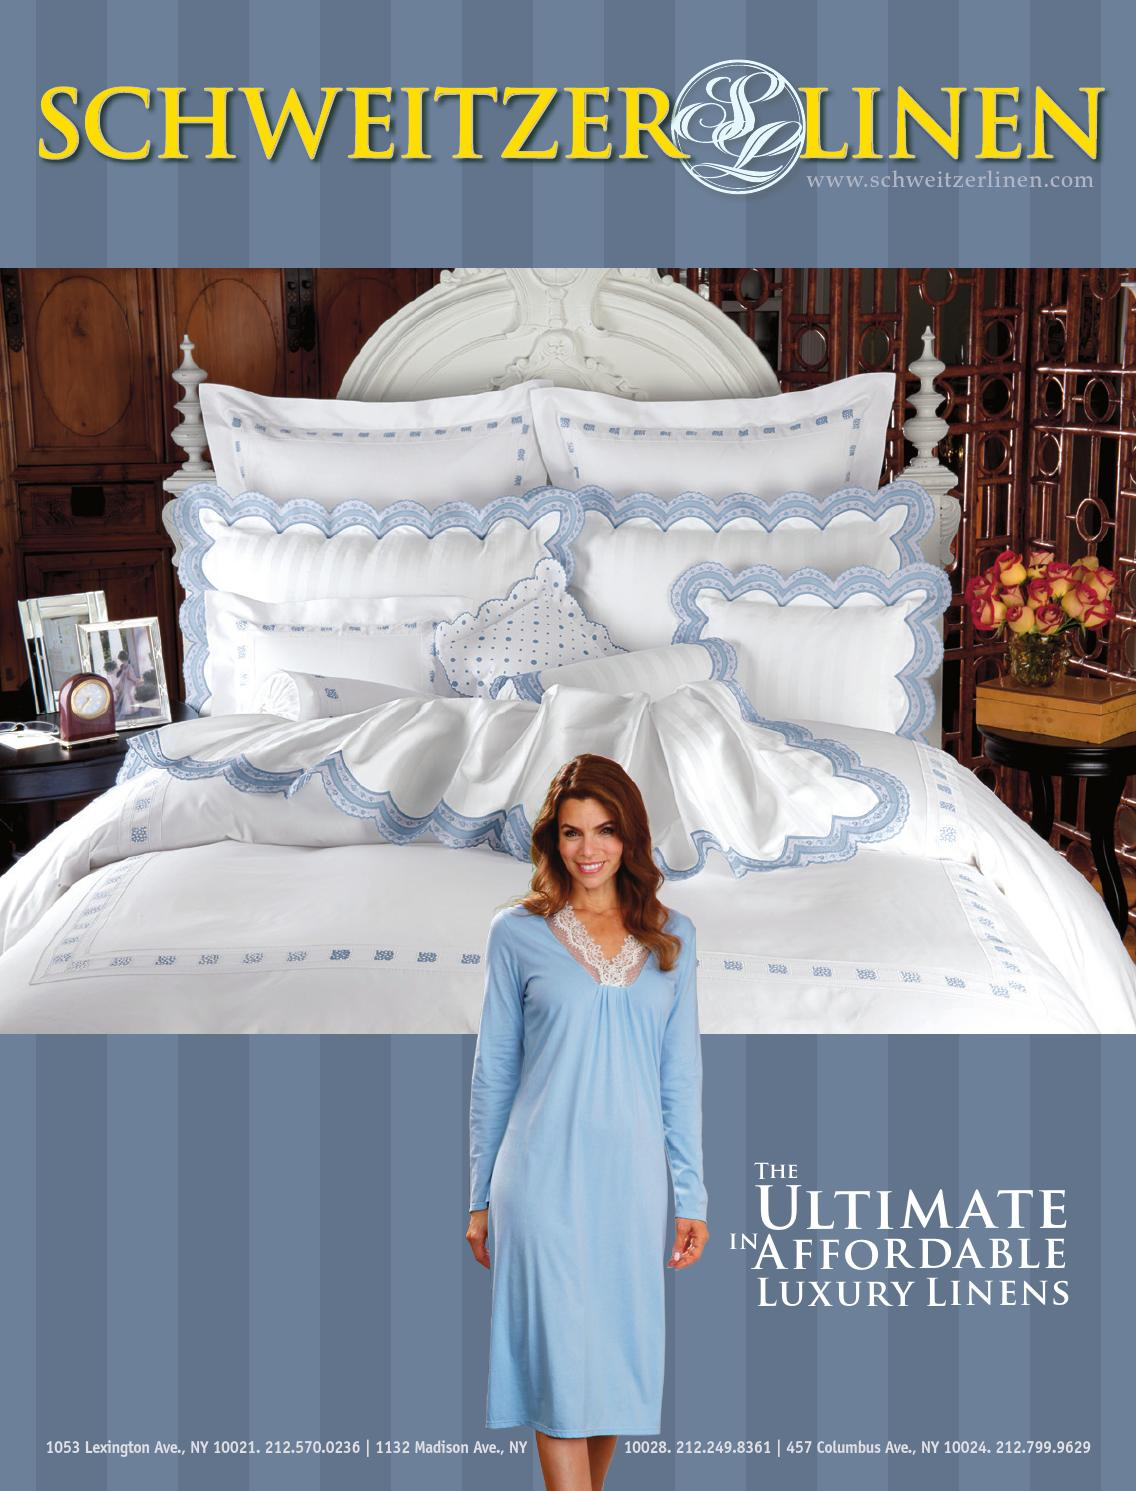 28 Count Linen 1//8 ~Midsummer Nights*May Vary From Photo~Under The Sea